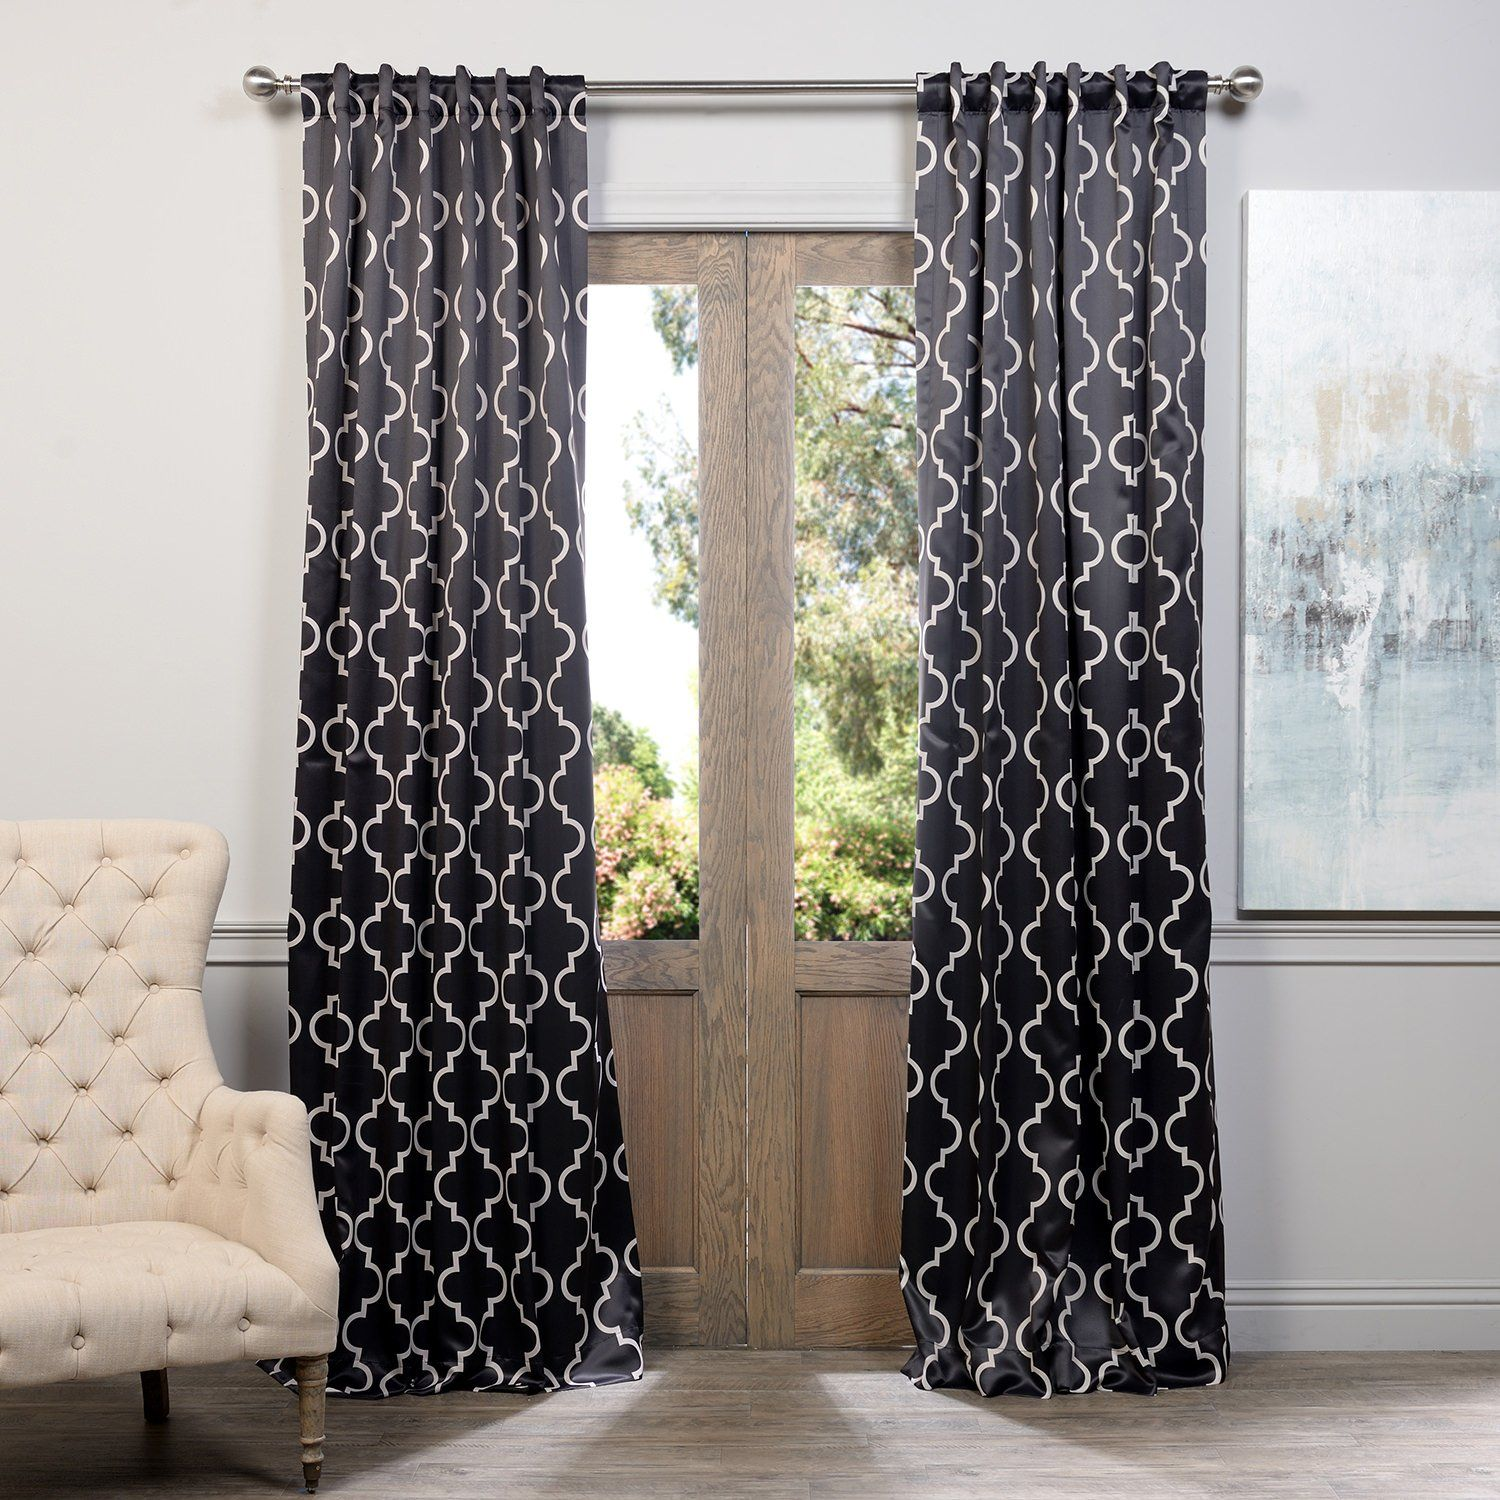 Amazon Half Price Drapes BOCH KC21 96 Blackout Curtain